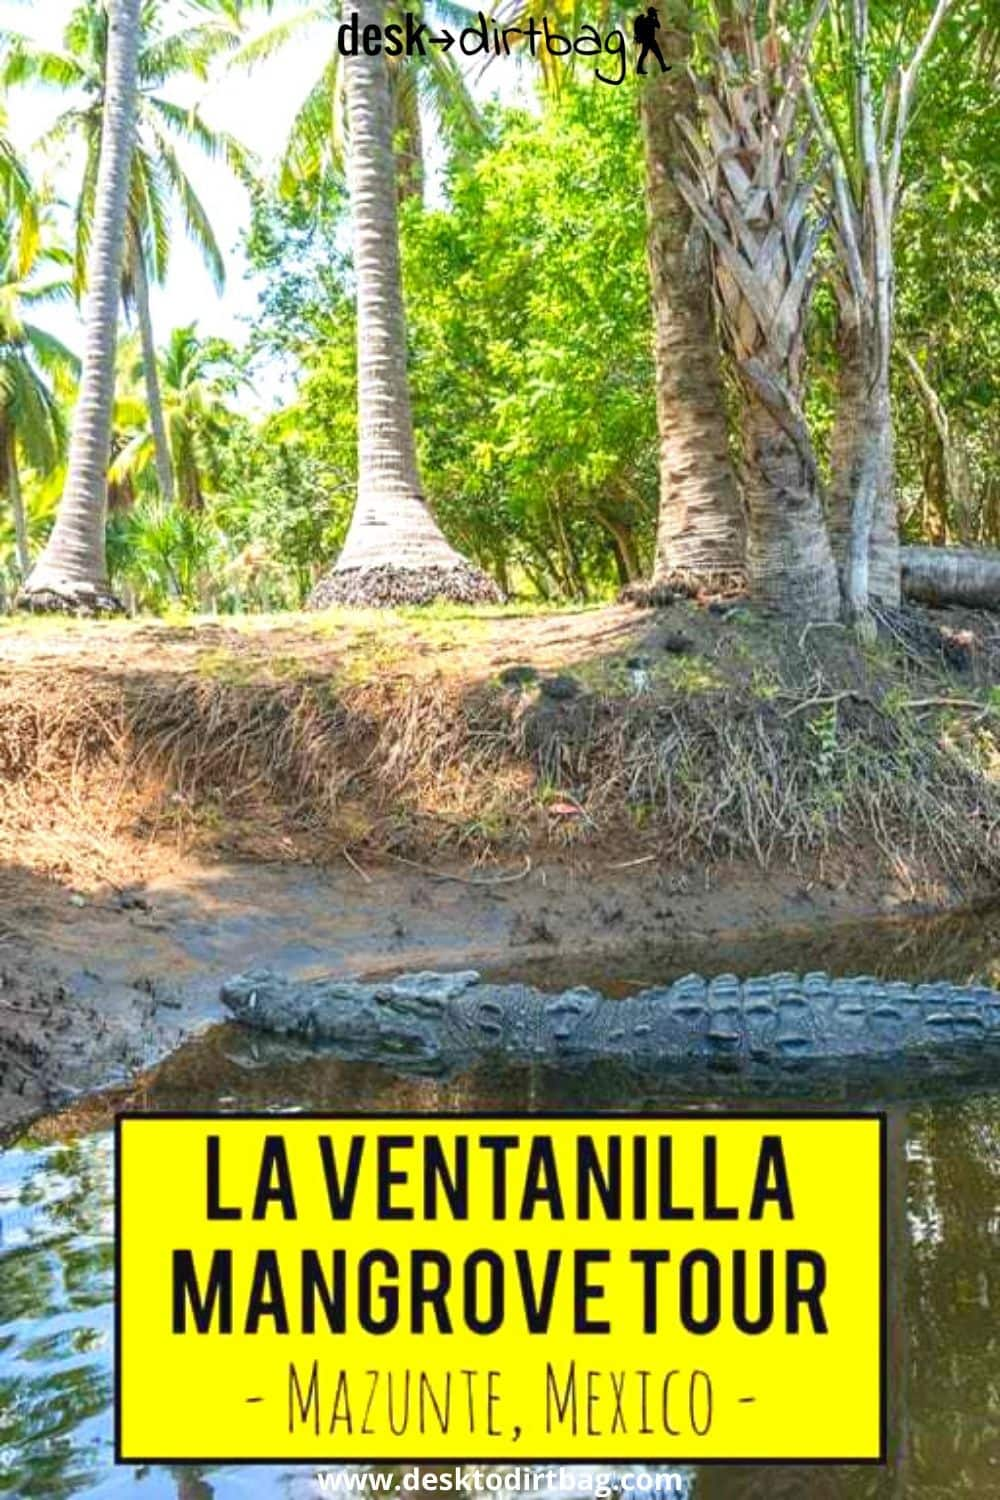 Ecotourism Among the Mangroves and Wildlife in La Ventanilla, Mexico